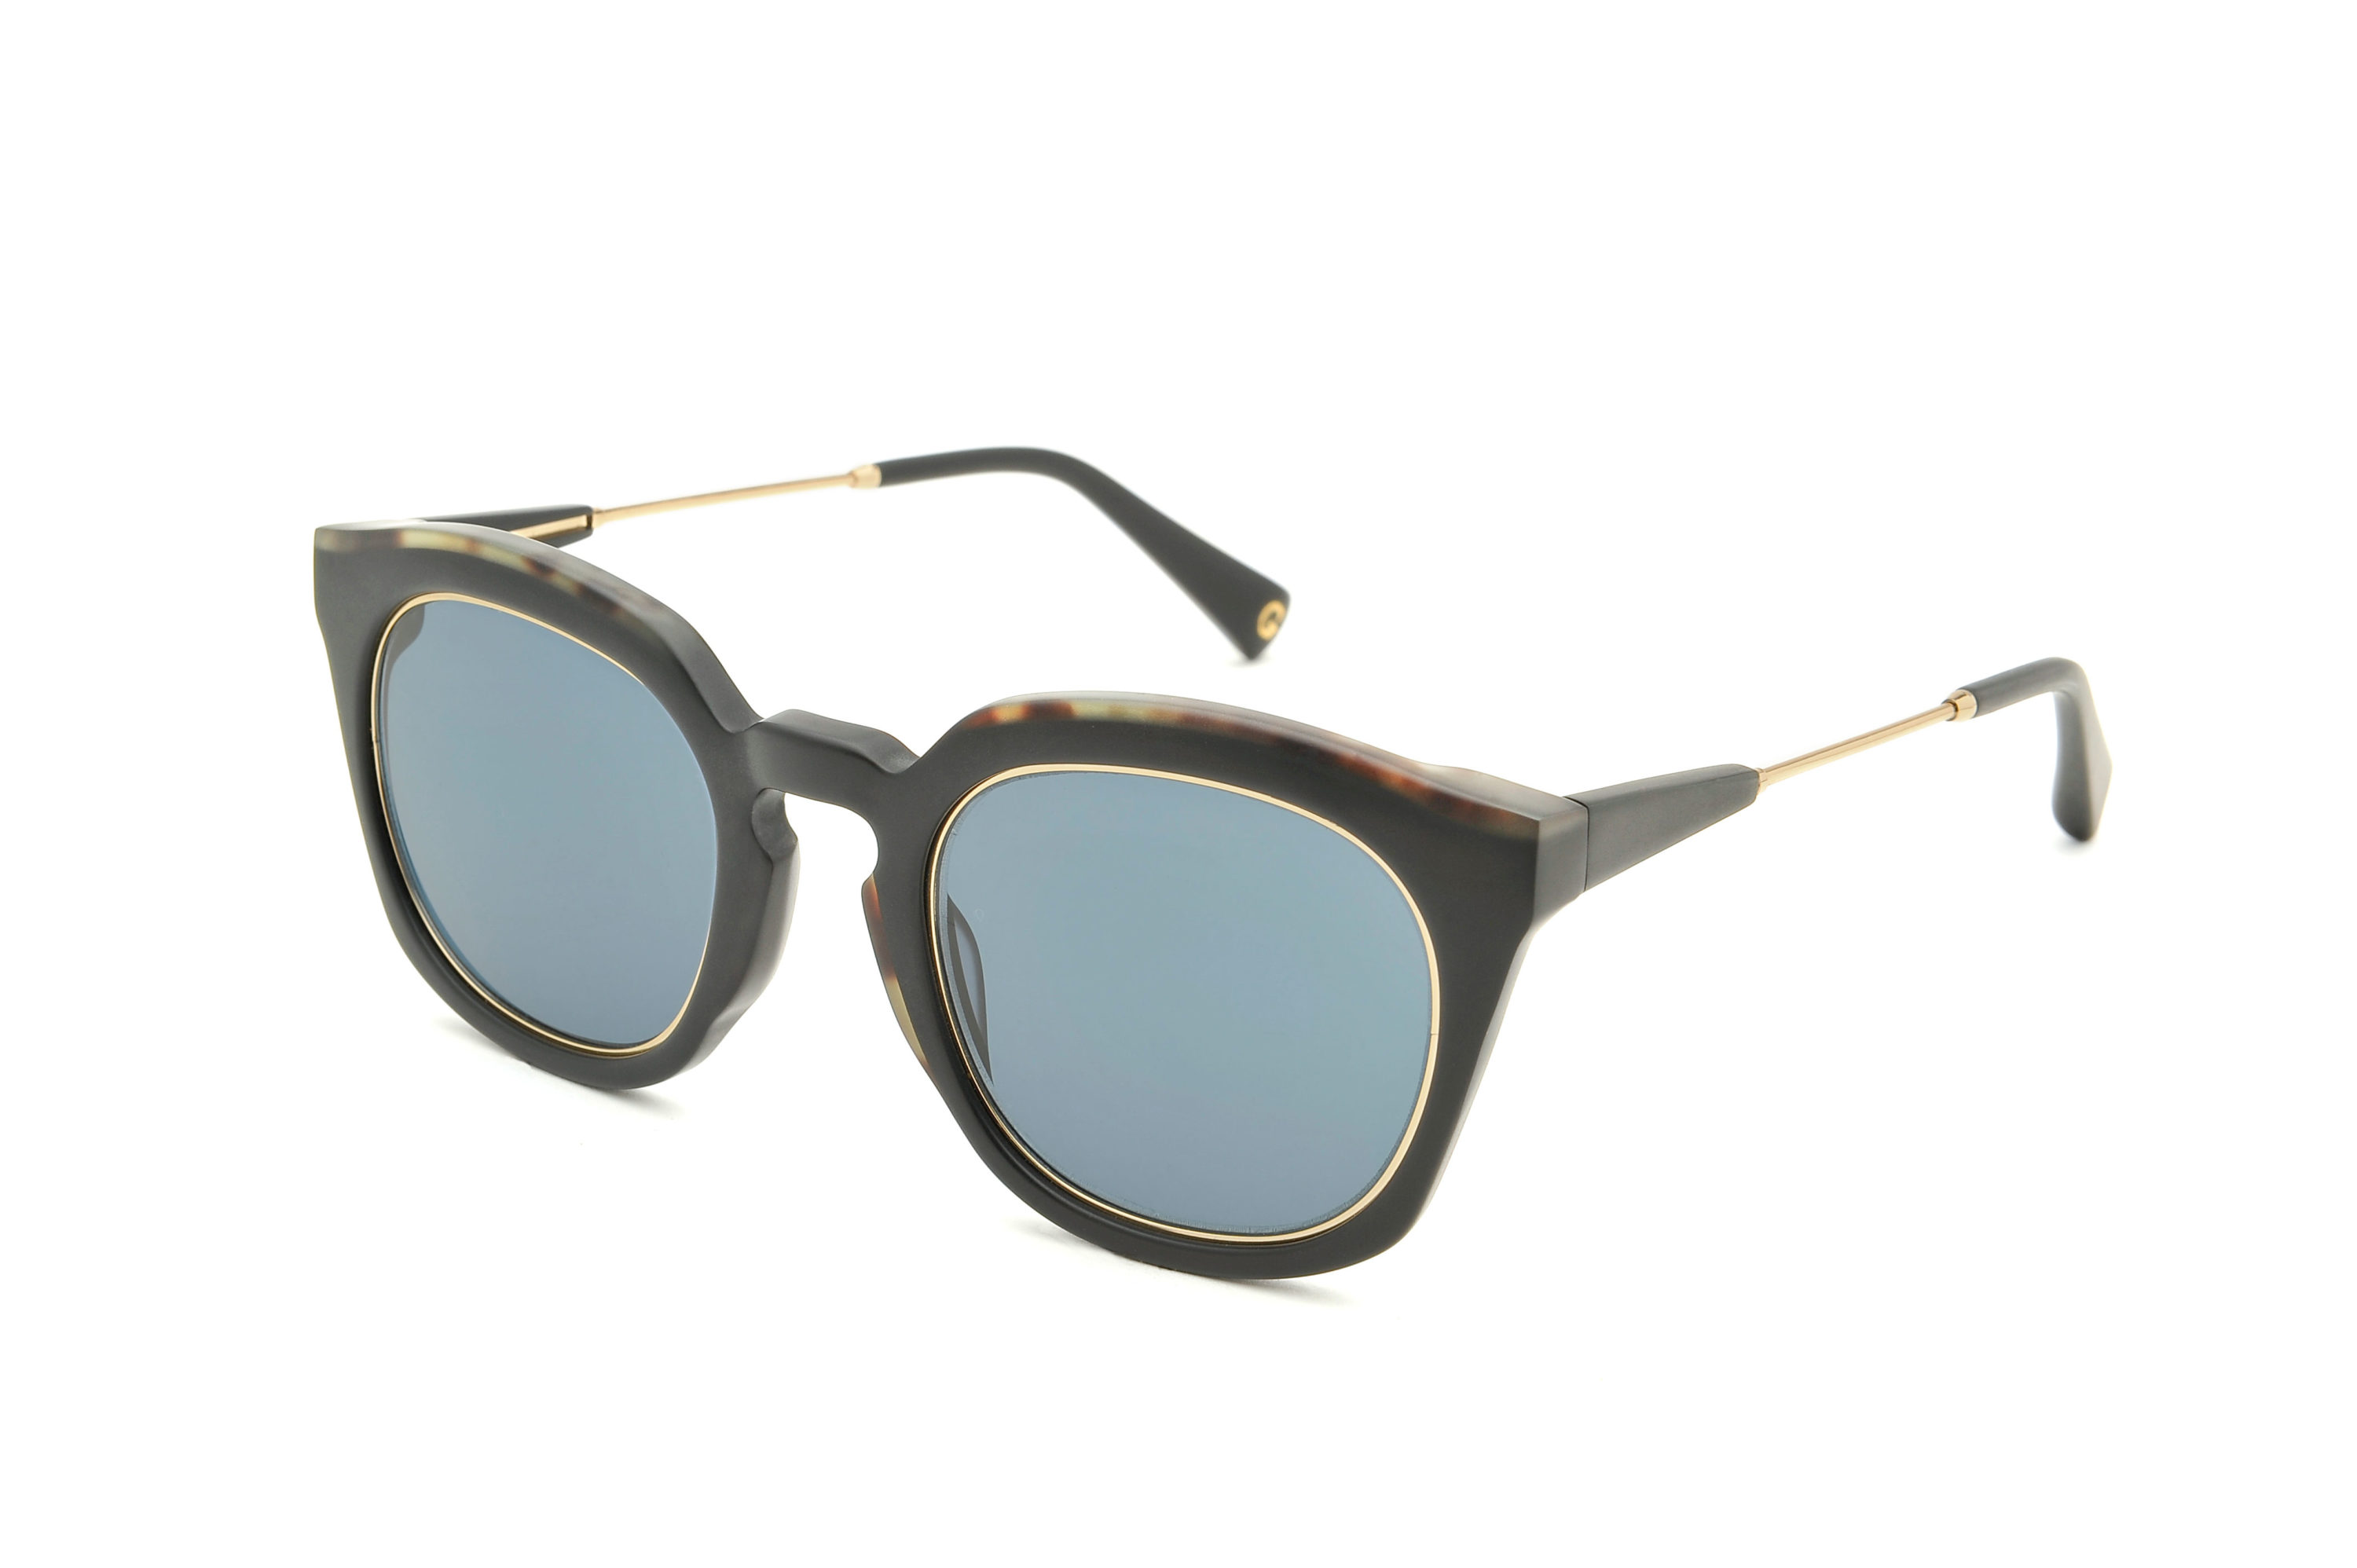 Thierry acetate squared black sunglasses by GIGI Studios